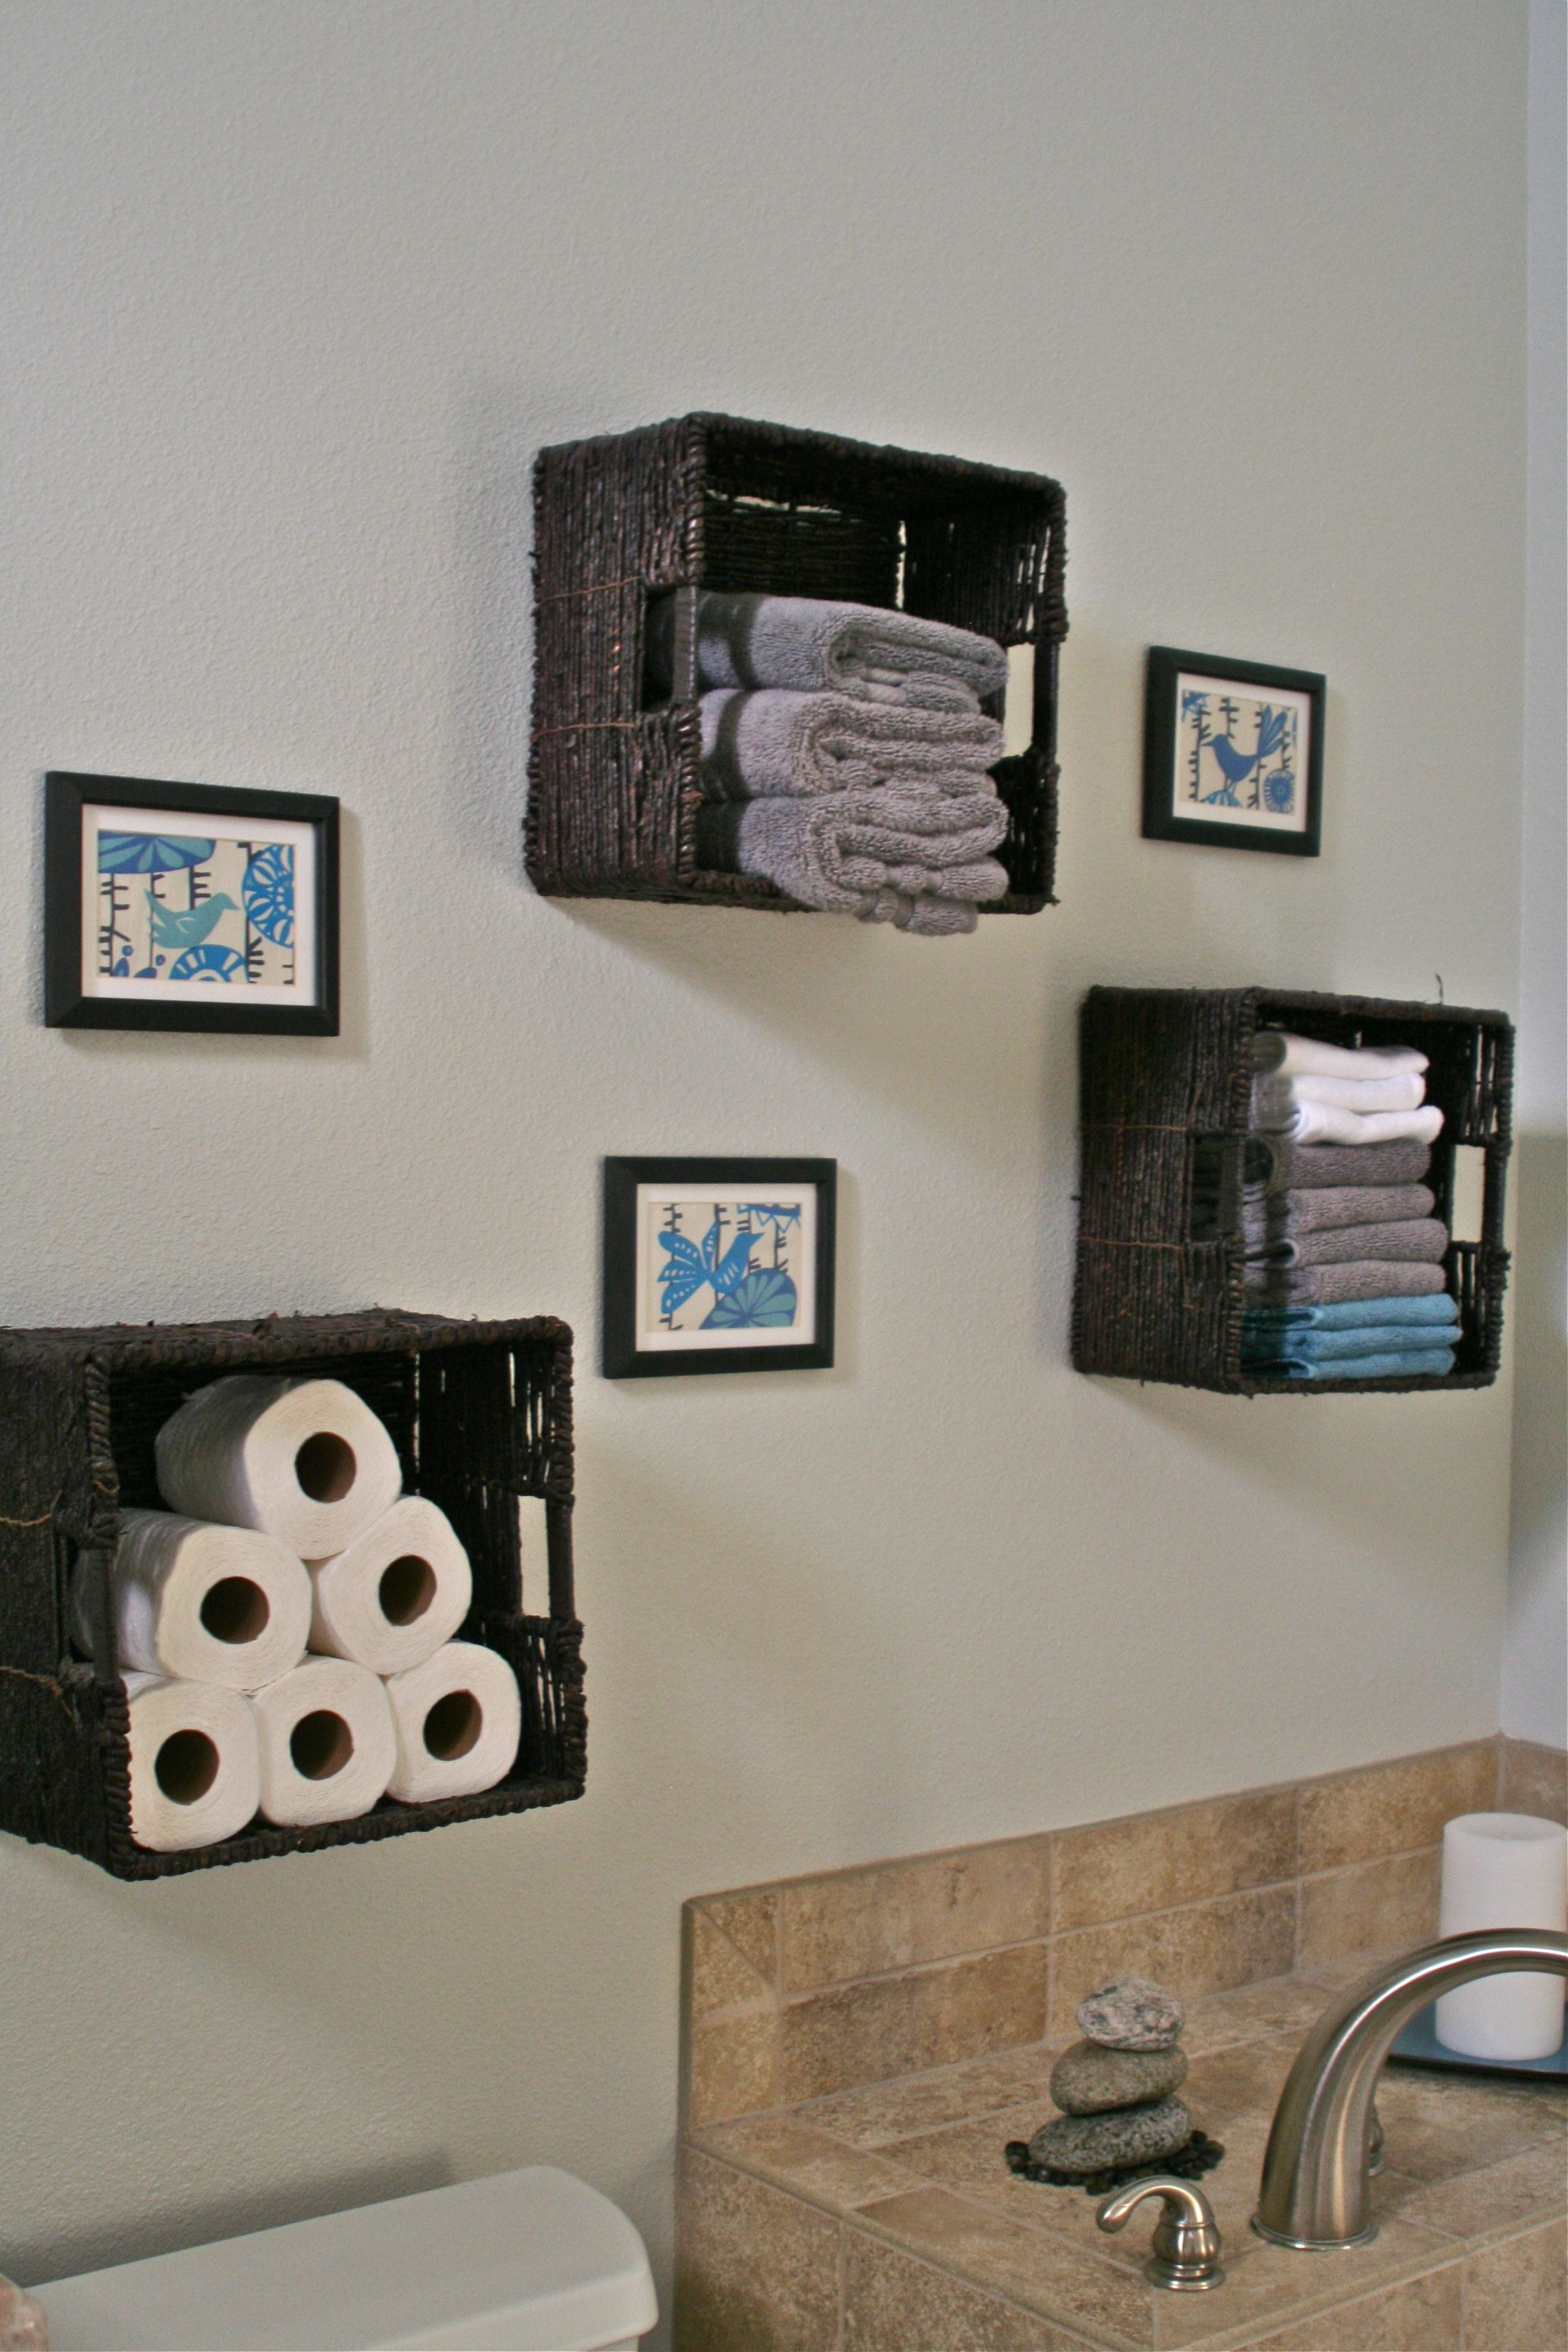 Bathroom Storage Baskets For Towels Toilet Paper Etc Love with regard to proportions 2304 X 3456